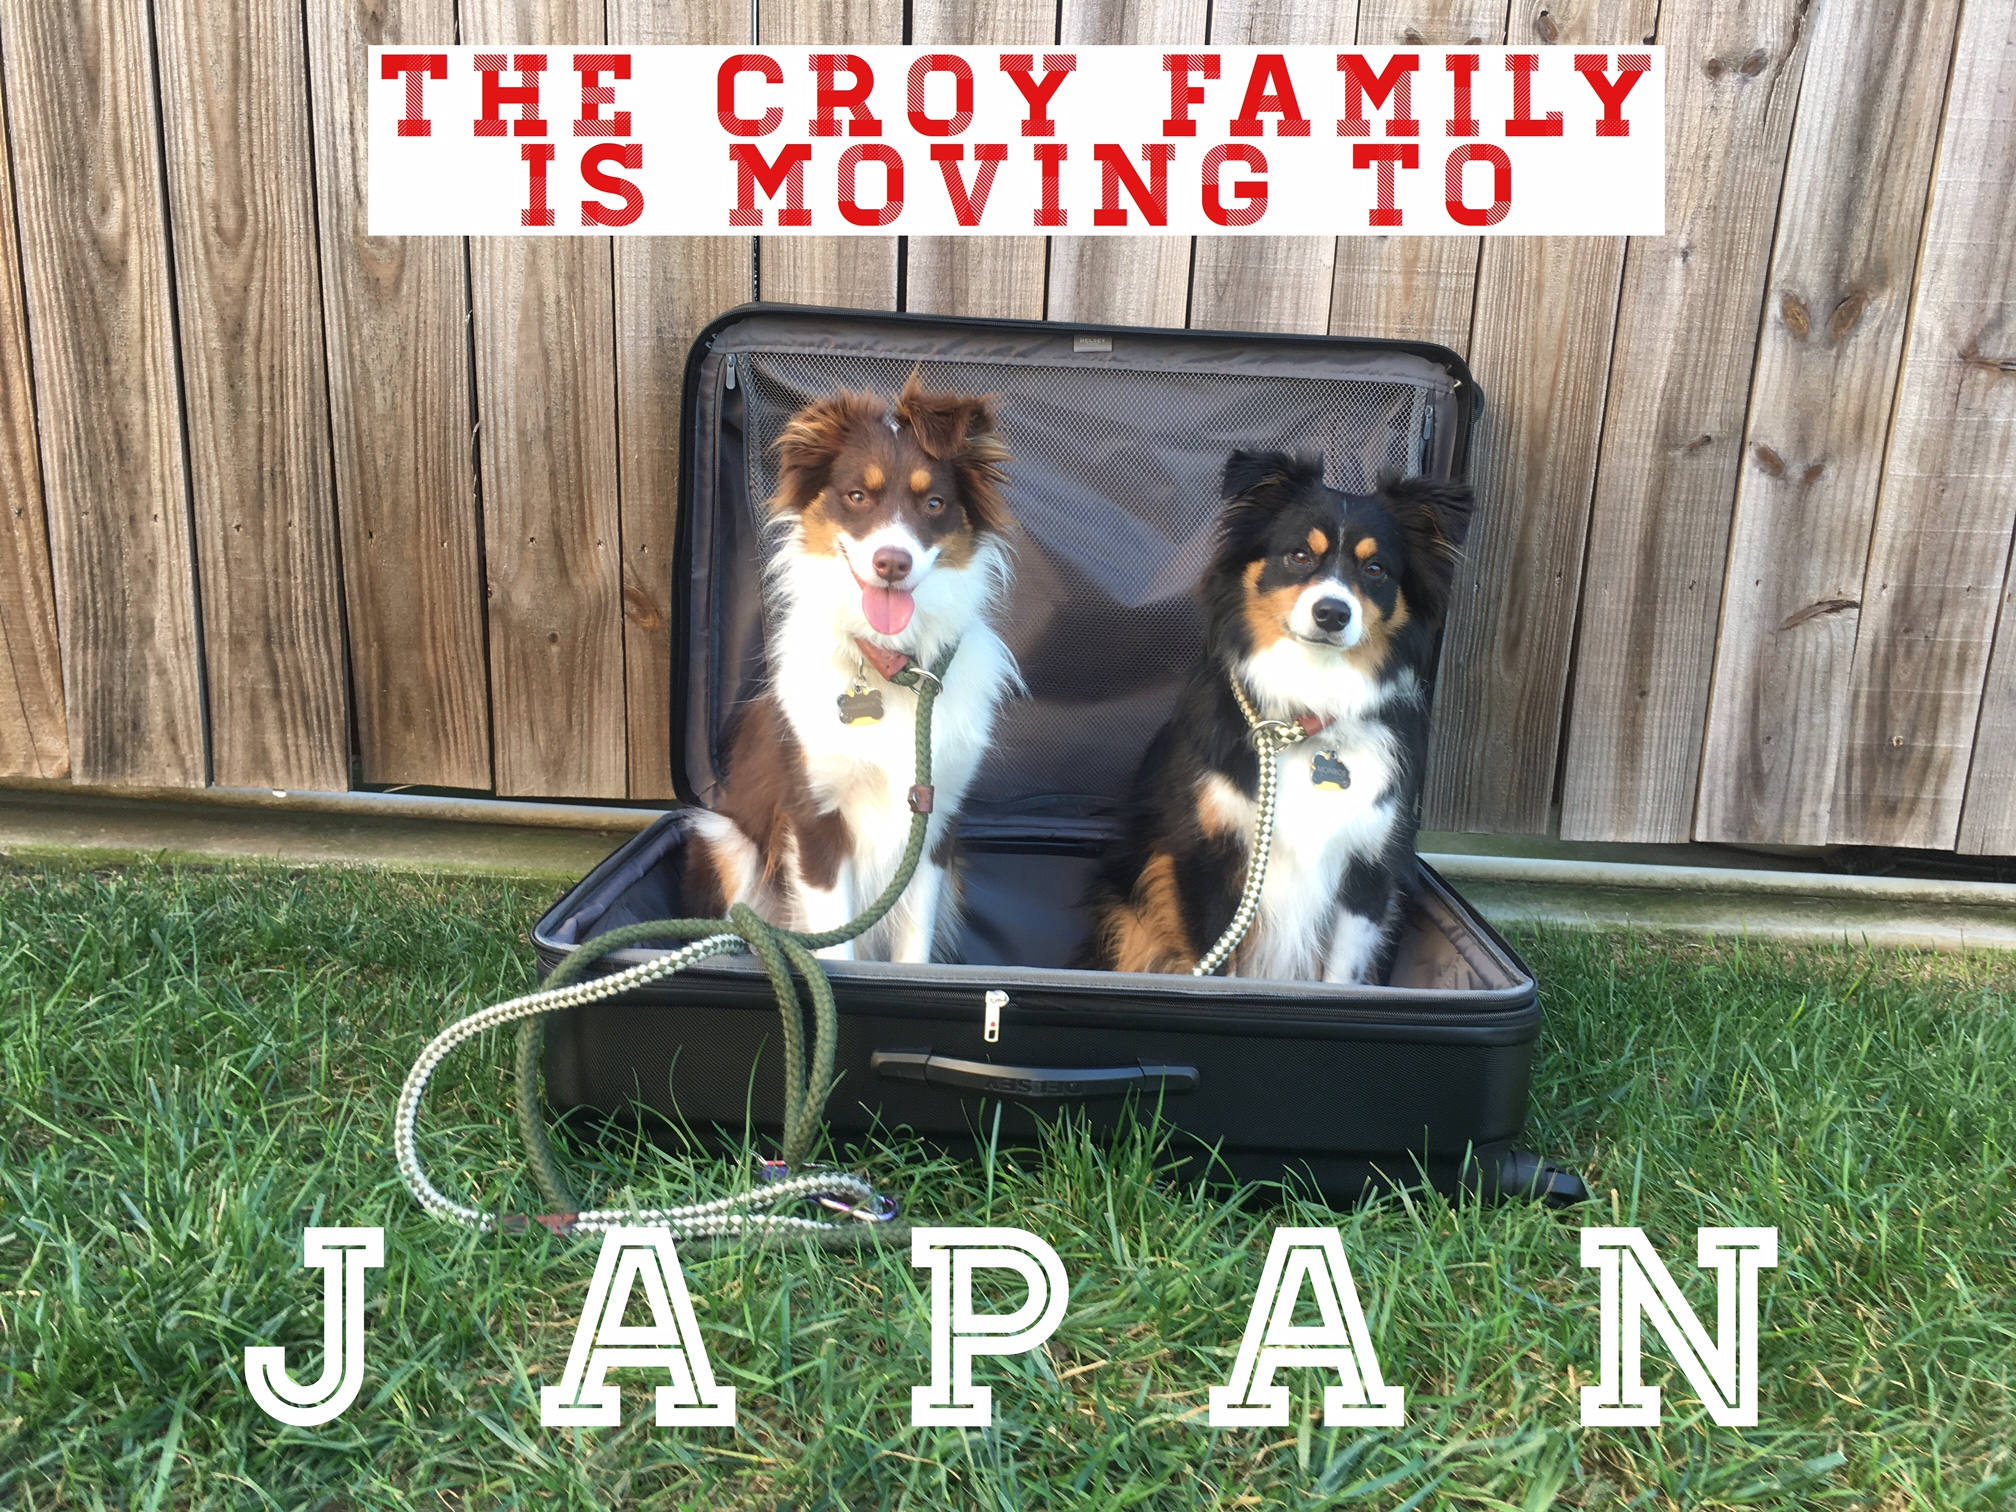 We moved to Japan where it is critical that I meal plan since we only have one car! - Click here to read about how we ended up here!